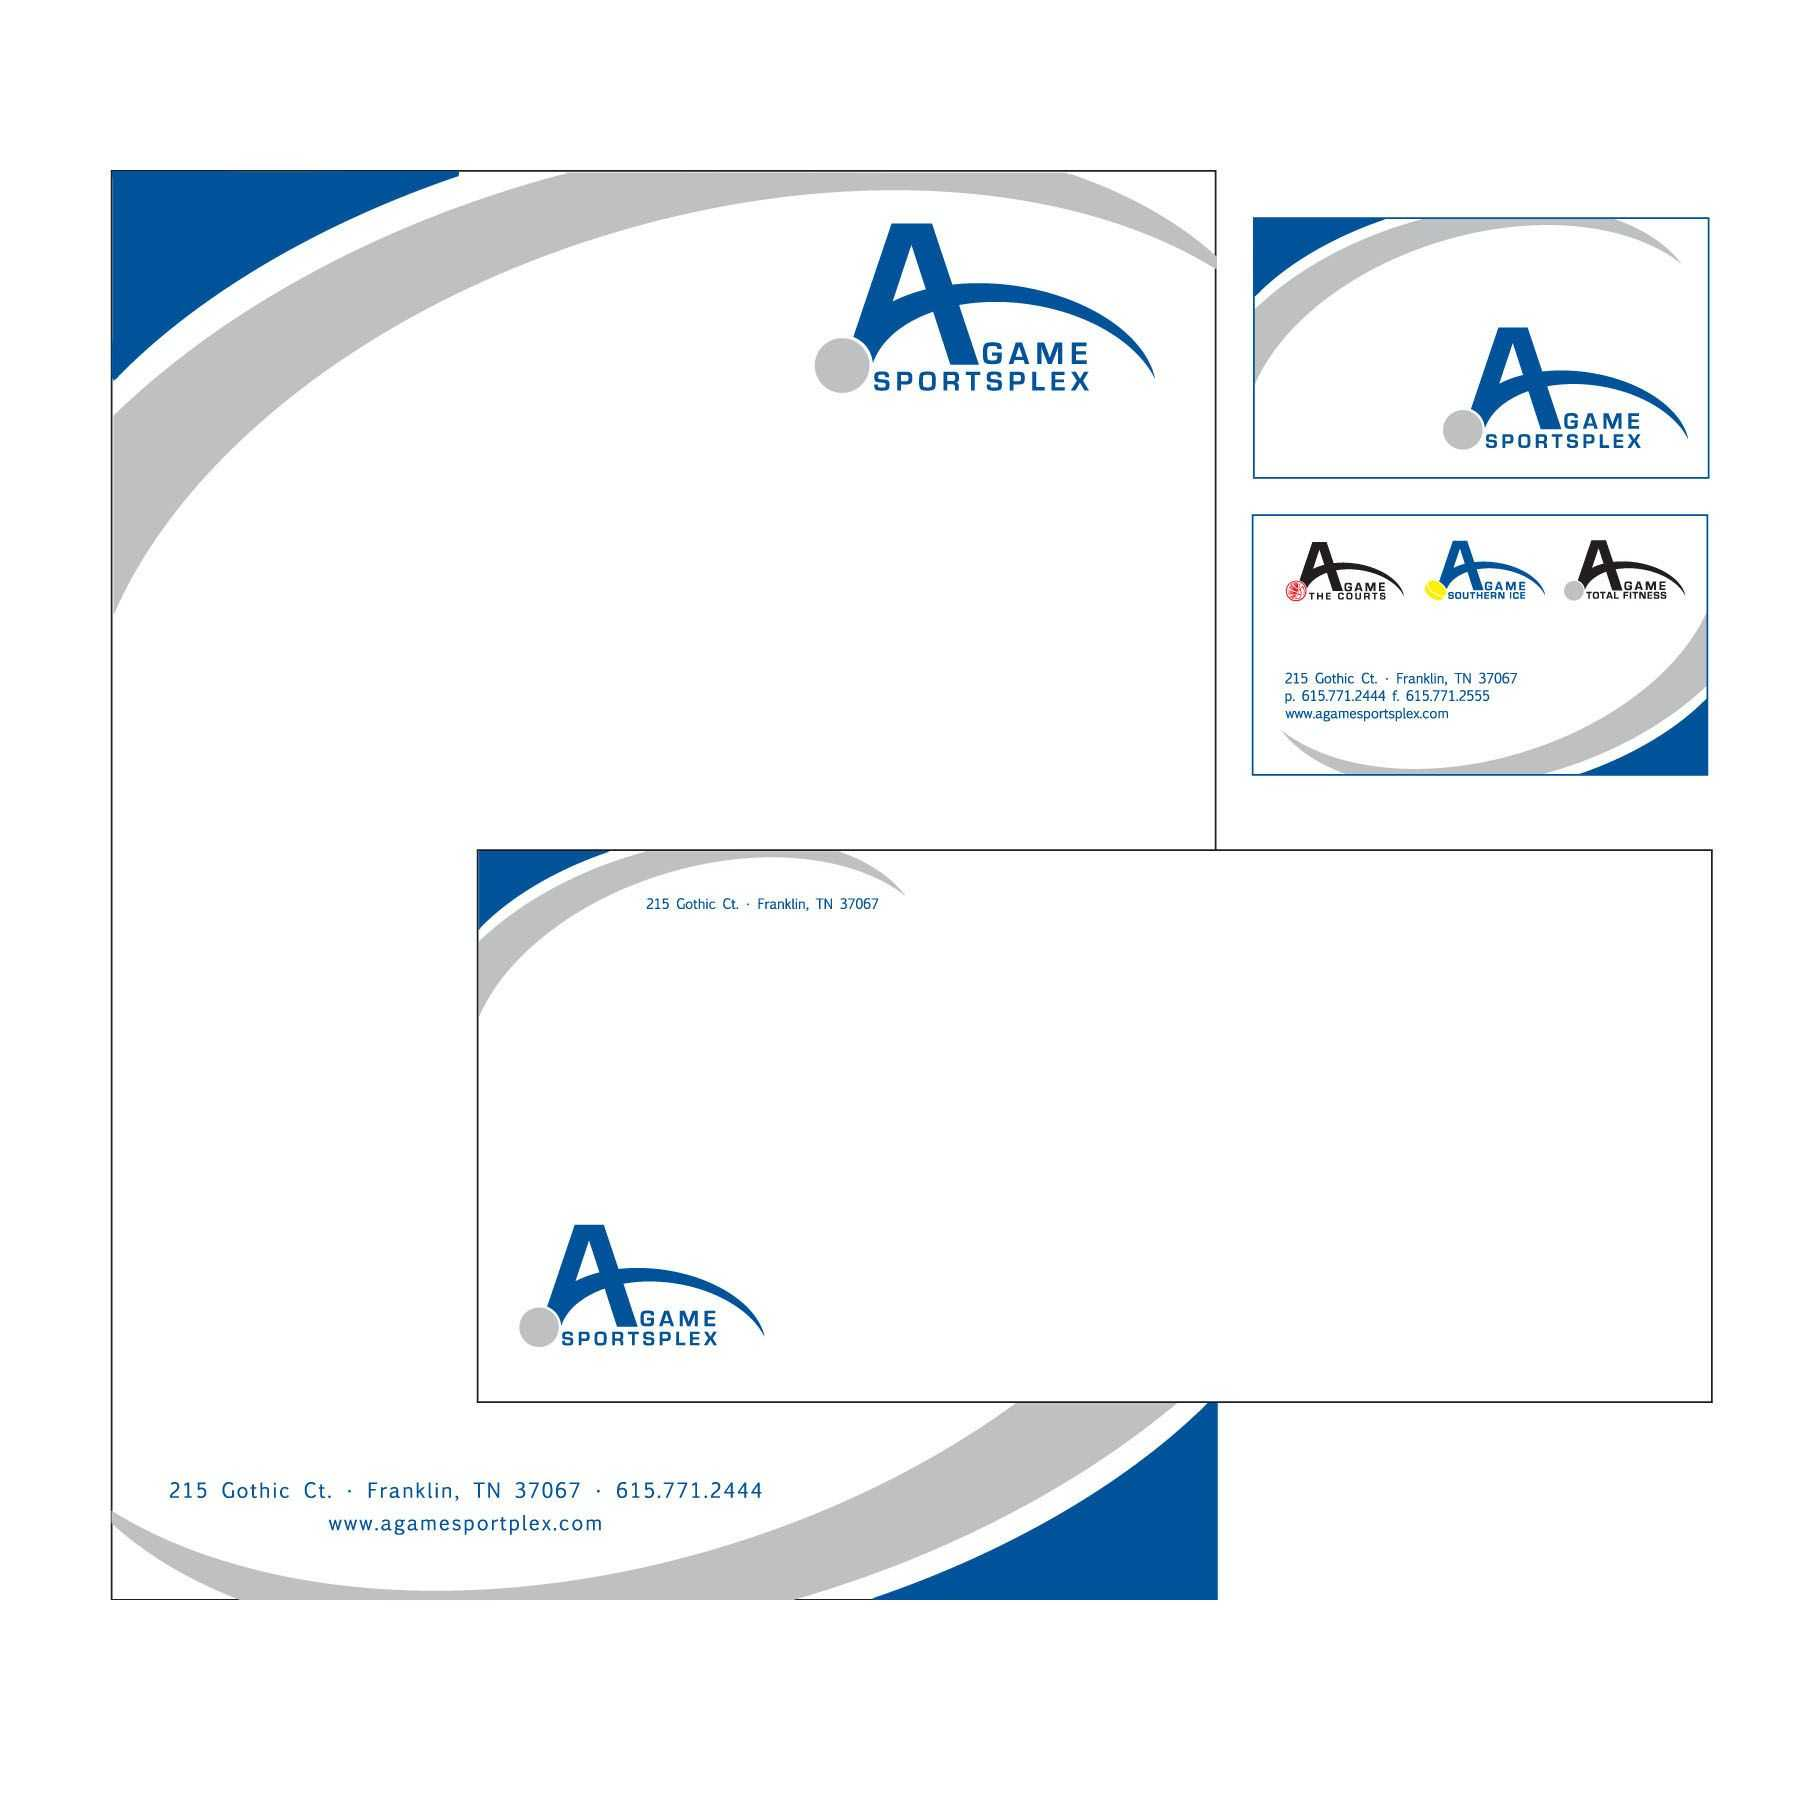 Pindaniel Carter On Letterhead, Envelope And Business pertaining to Business Card Letterhead Envelope Template